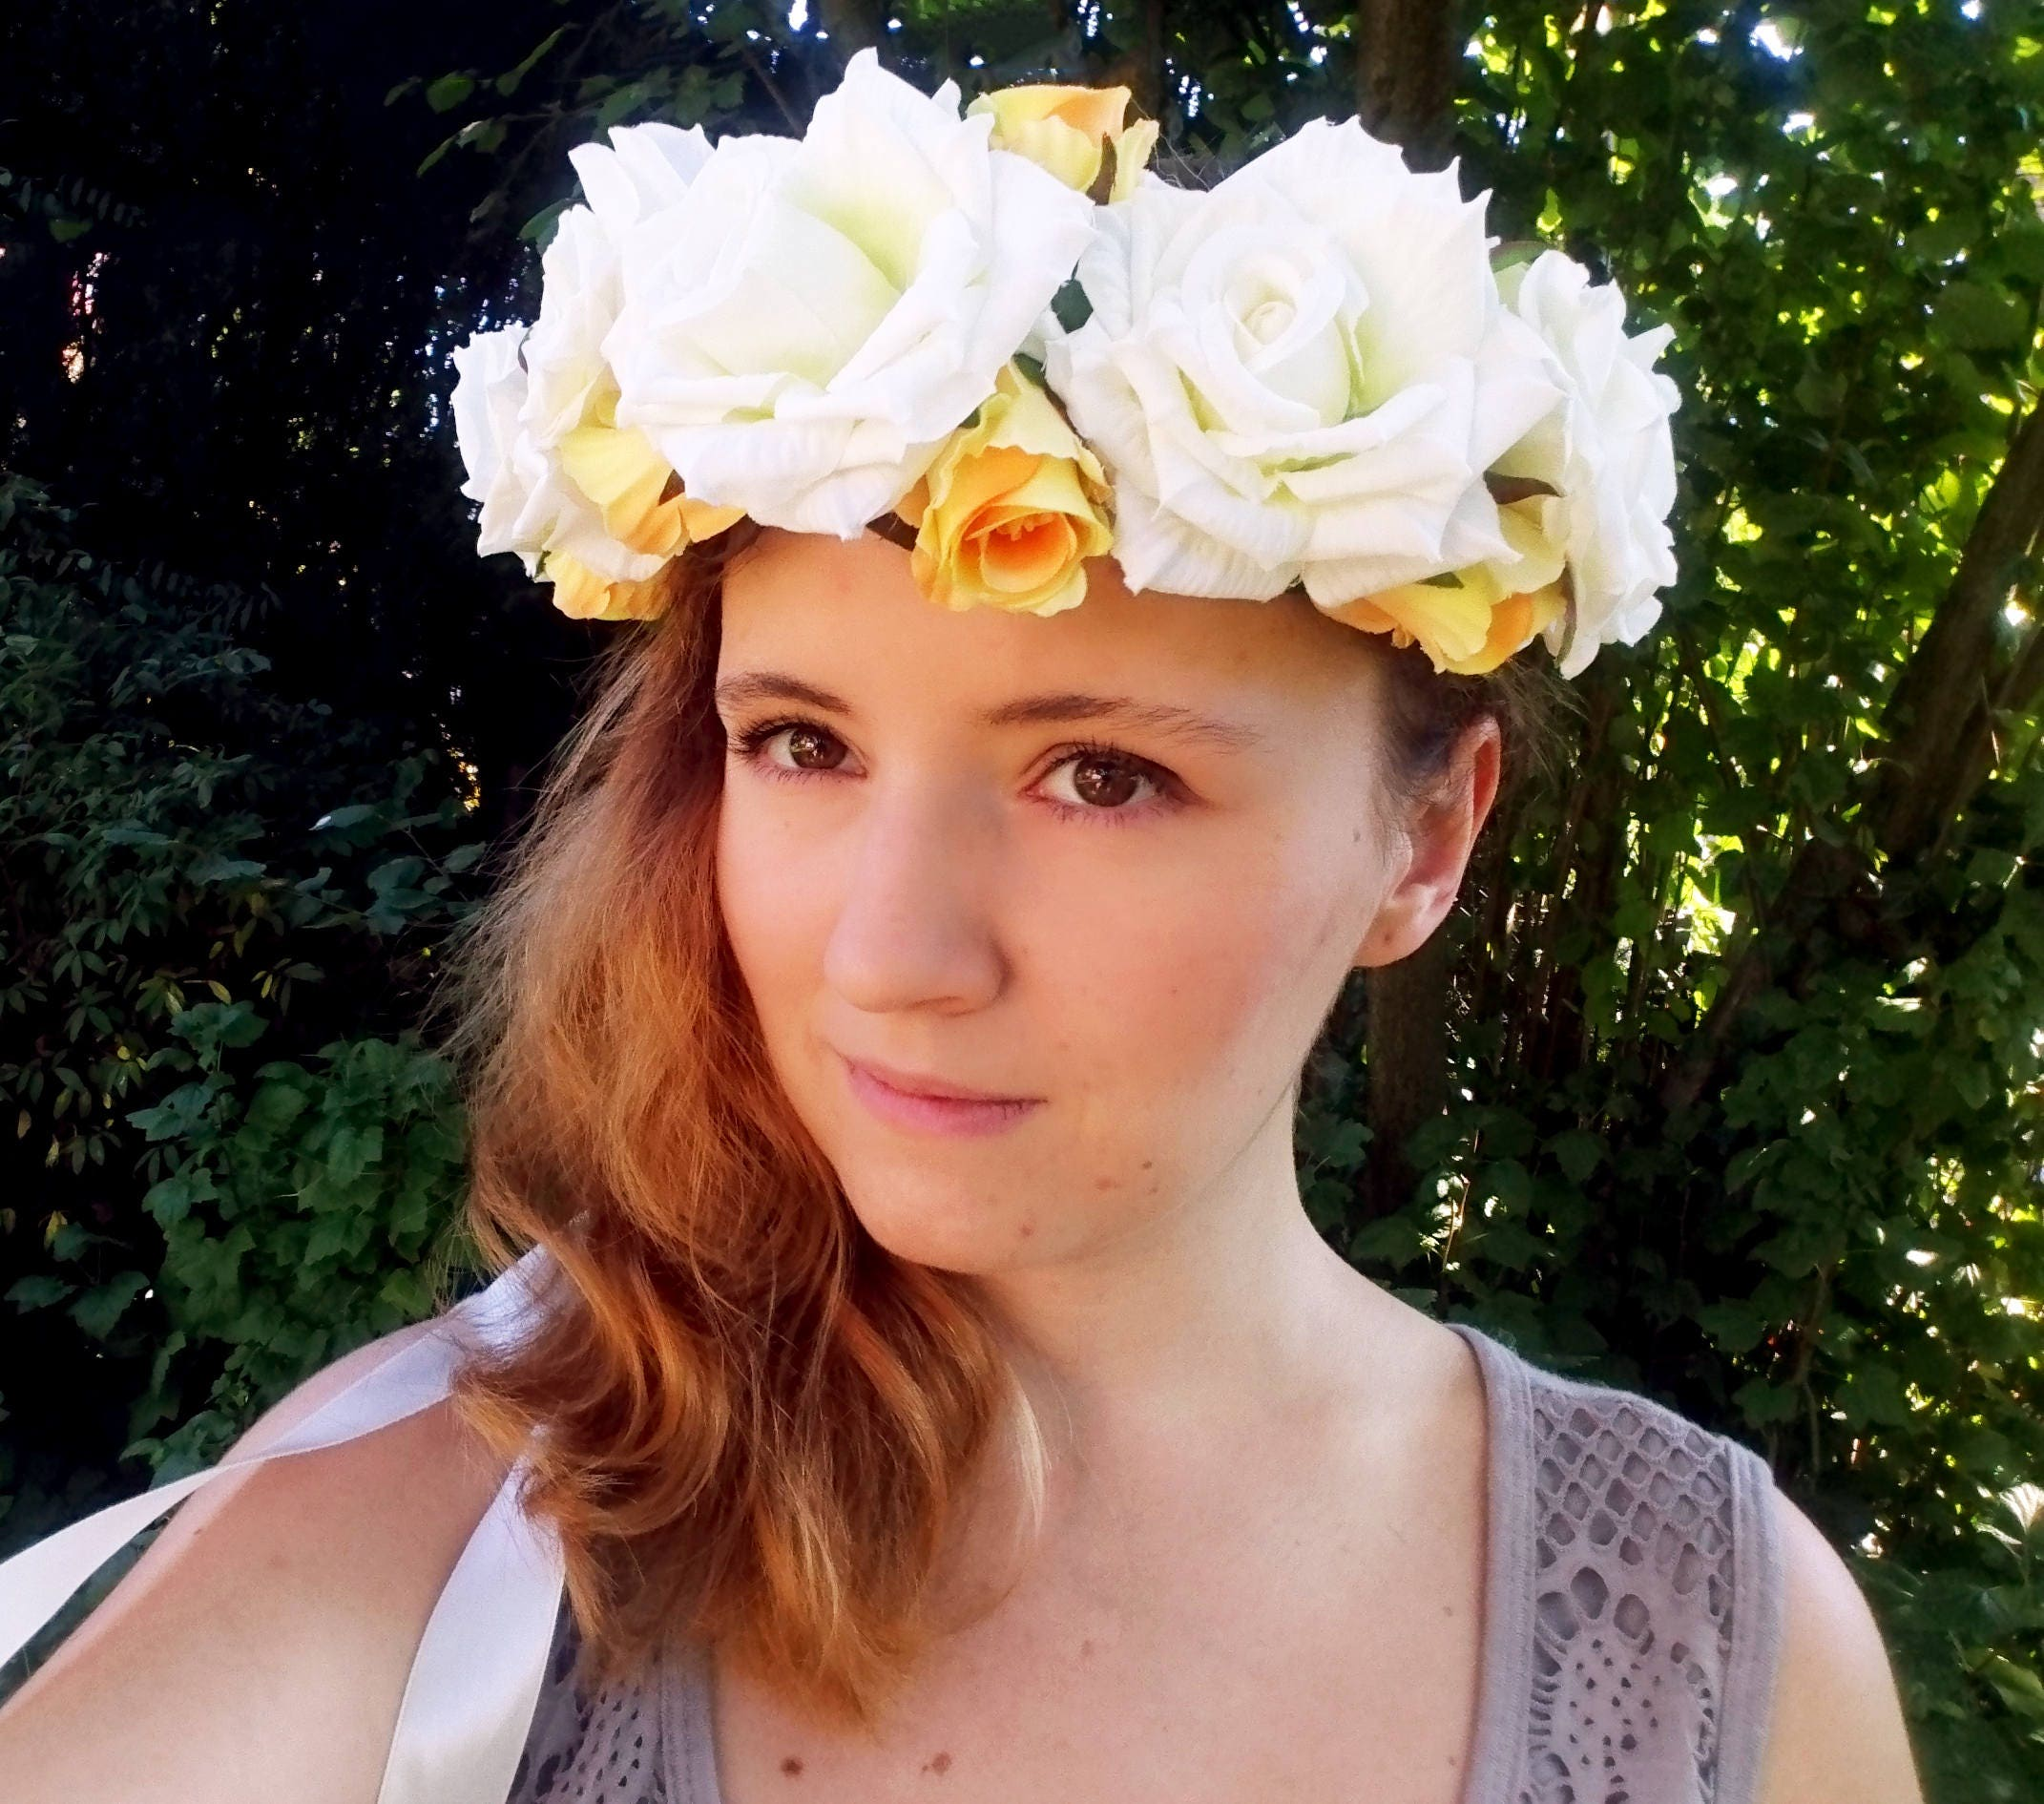 Silk flowers crown wreath ivory off white yellow rose wedding silk flowers crown wreath ivory off white yellow rose wedding ribbon flower girl bride summer realistic izmirmasajfo Image collections